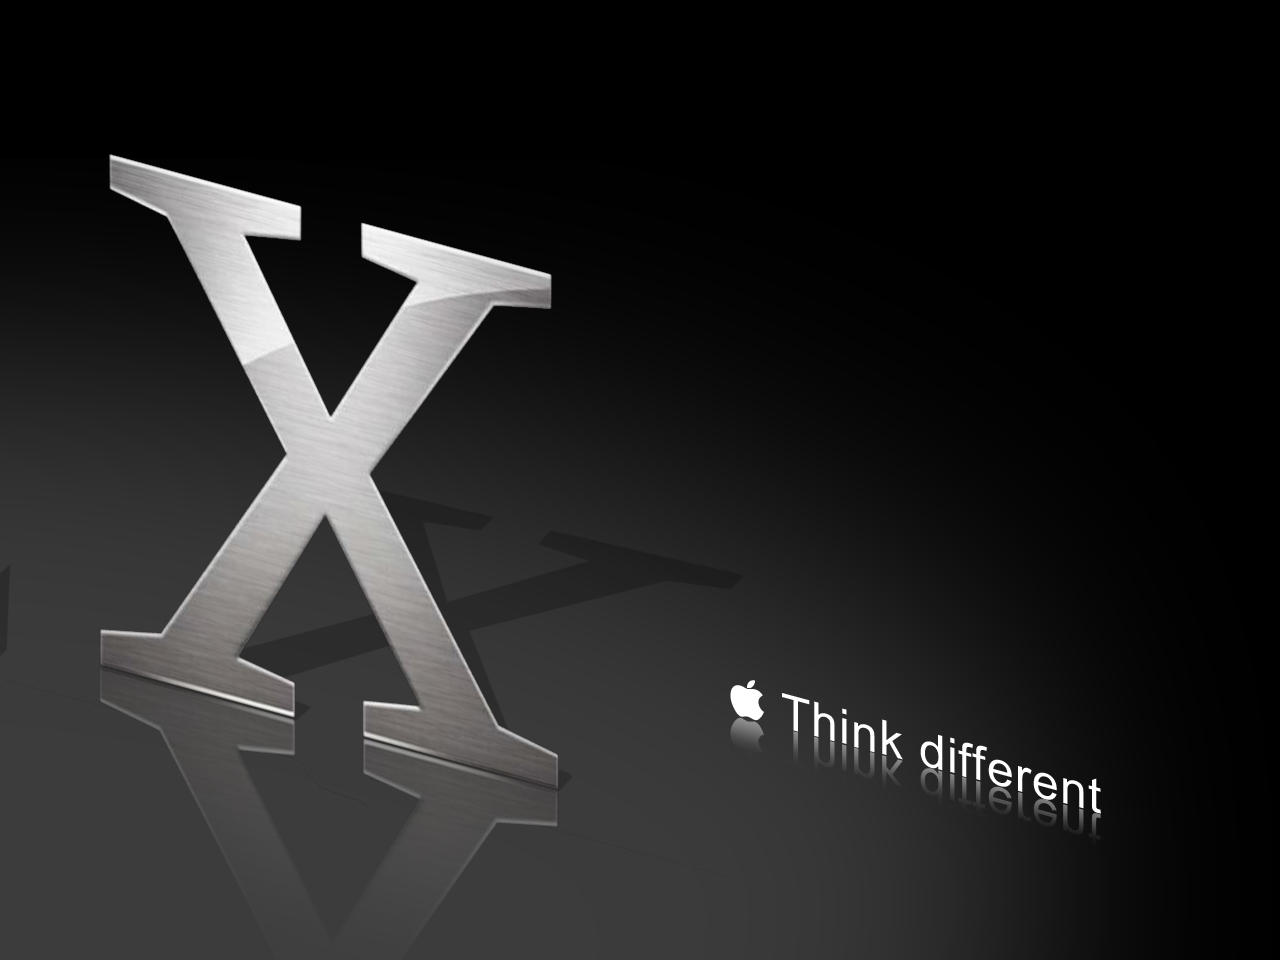 Mac OSX think different by Sontar